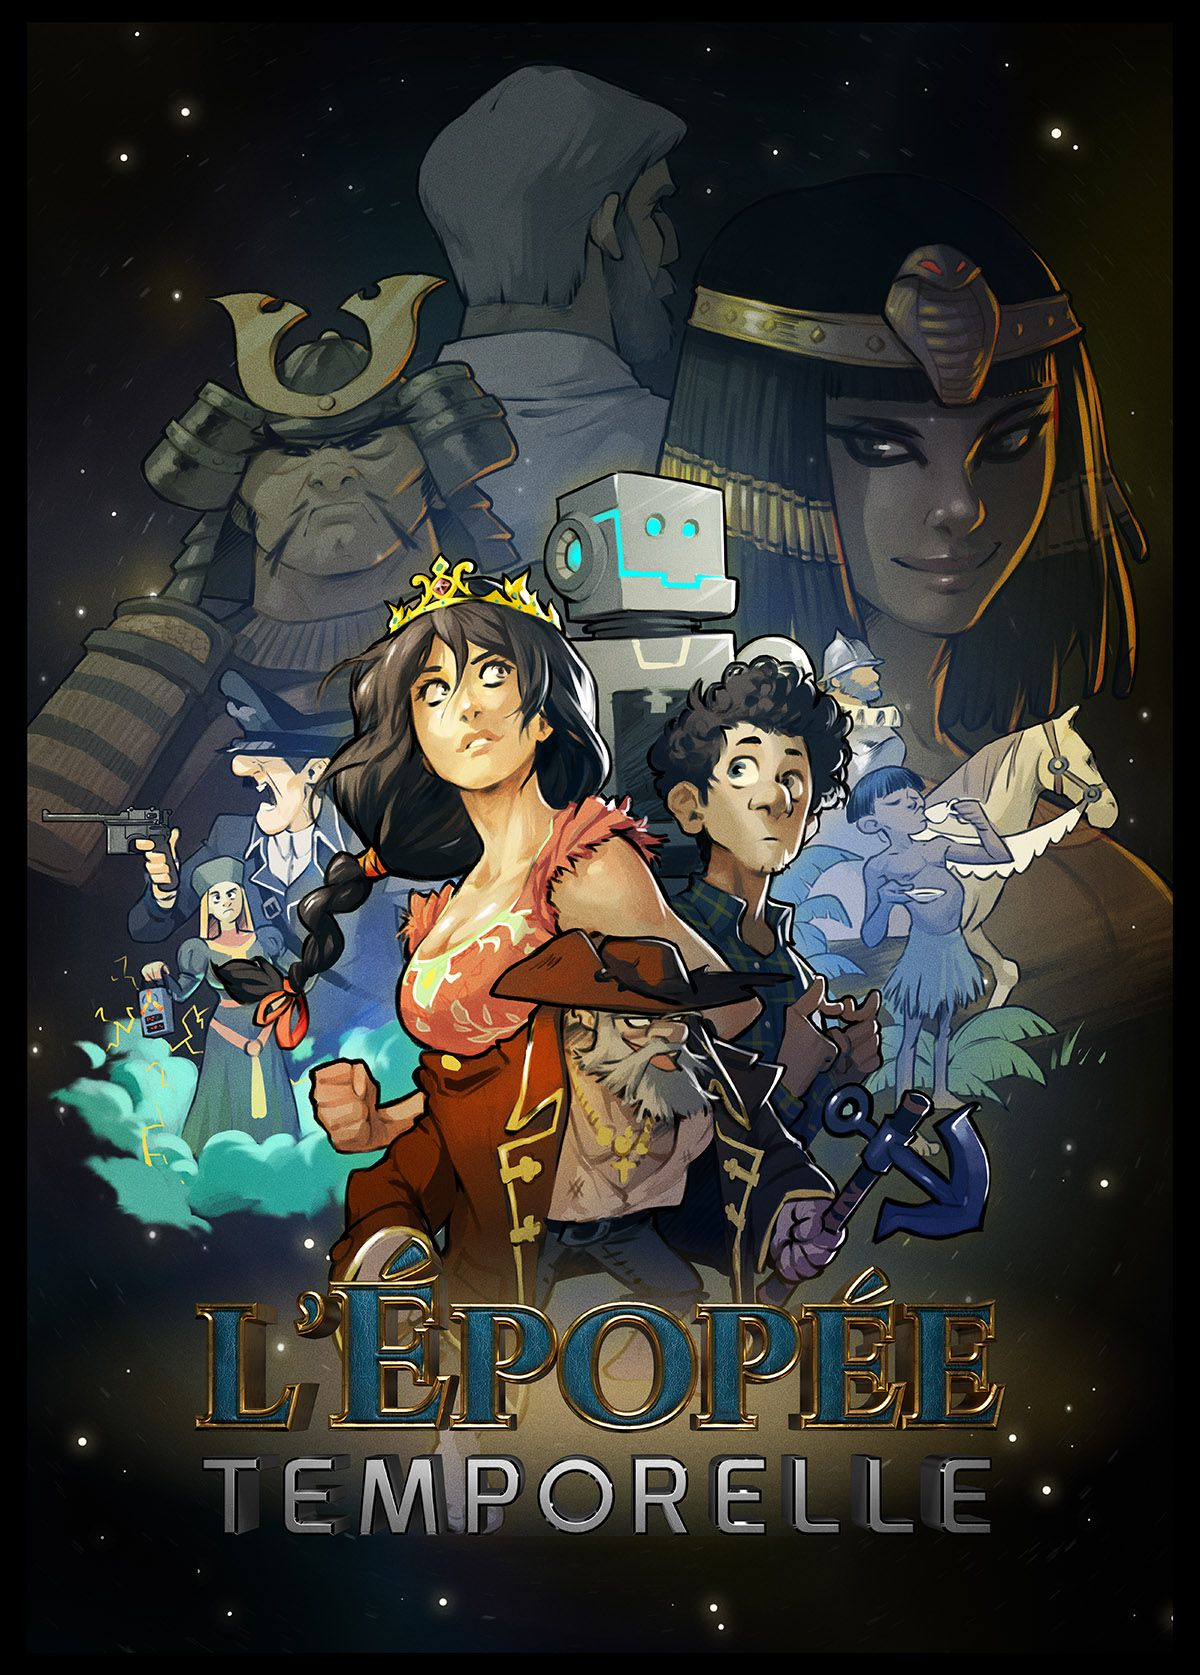 L'Épopée temporelle - Série audio (2017) streaming VF gratuit complet